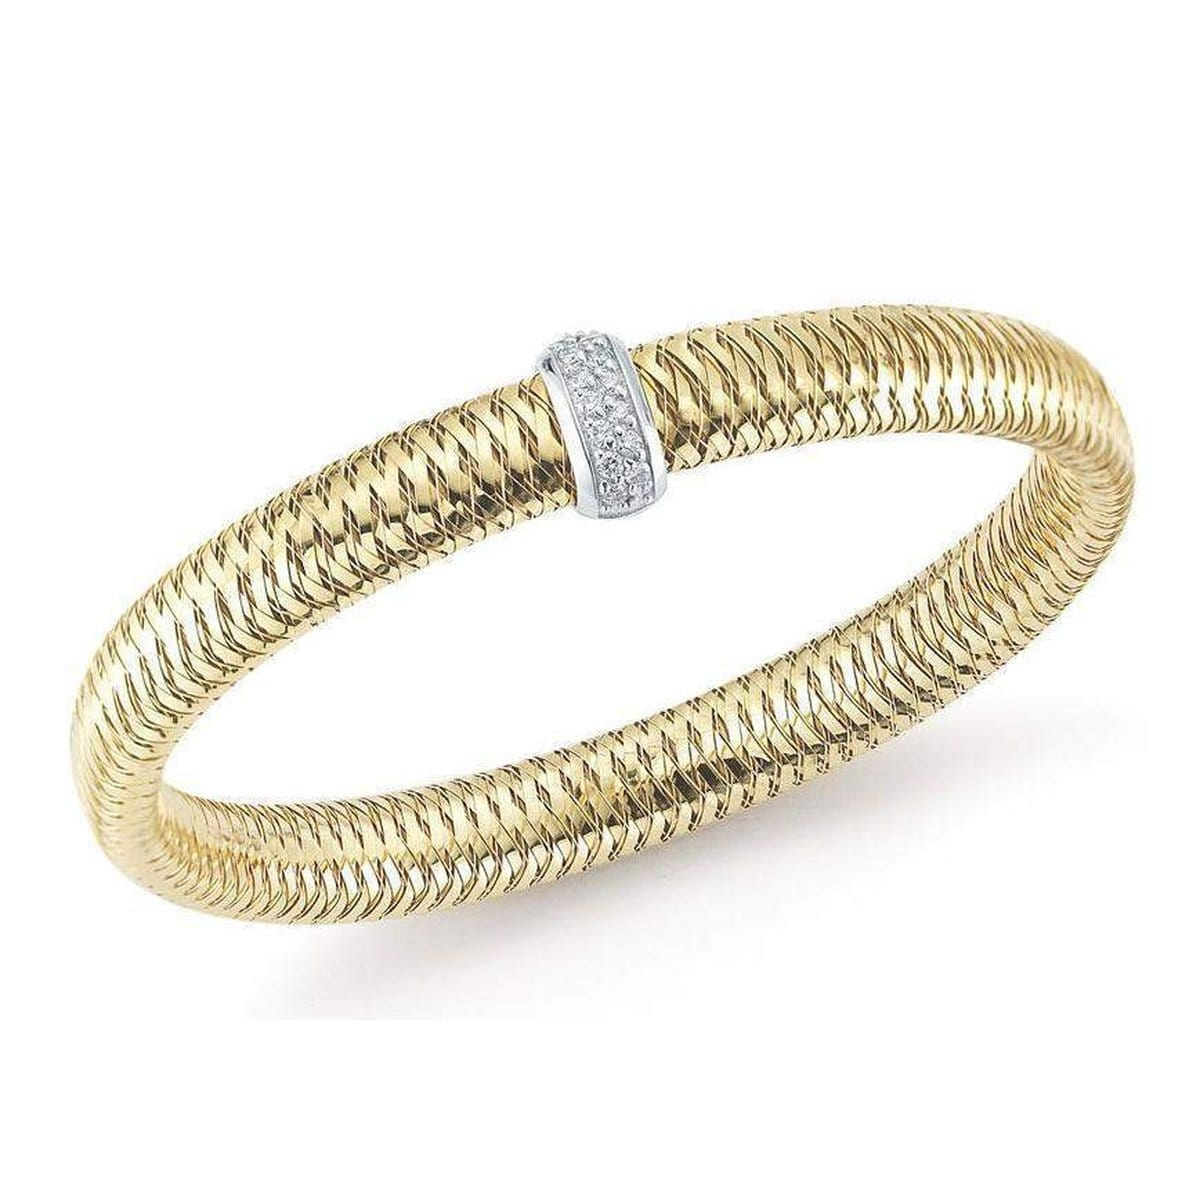 18k Yellow Gold & Diamond Primavera Bangle - 557716AJBAX0-Roberto Coin-Renee Taylor Gallery